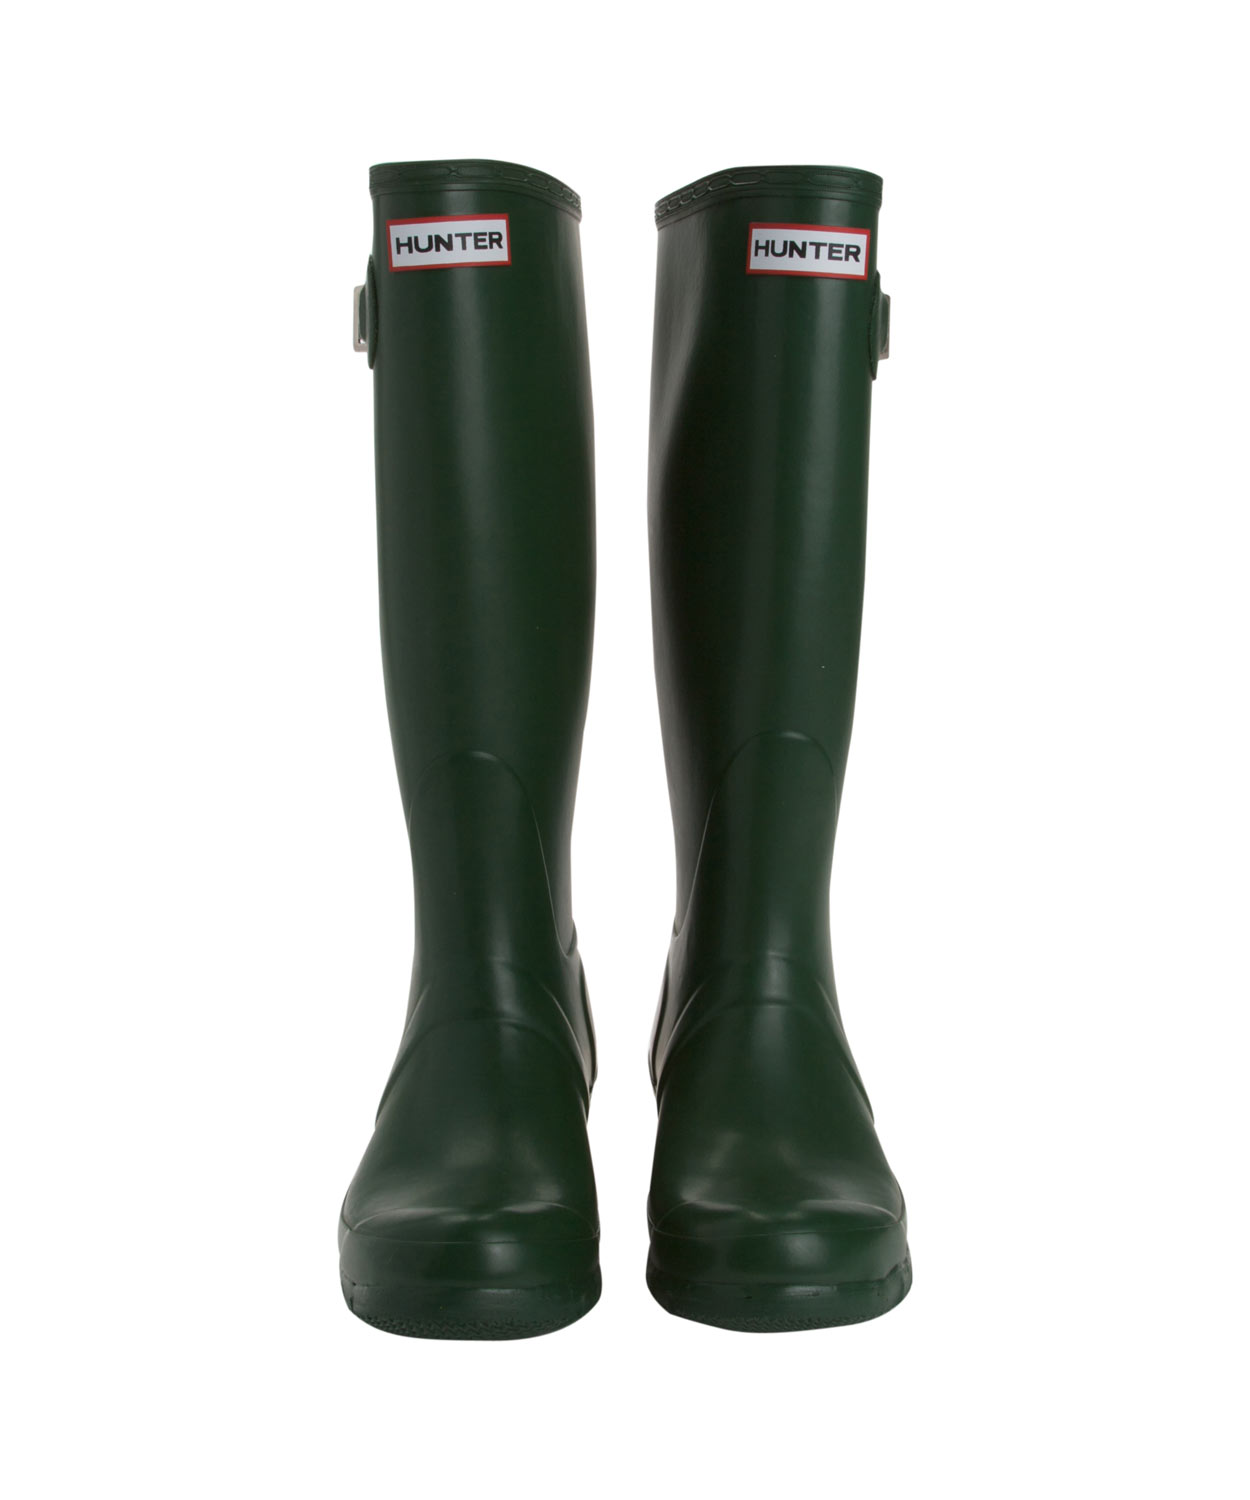 HUNTER Tall Wellington Boots in Green